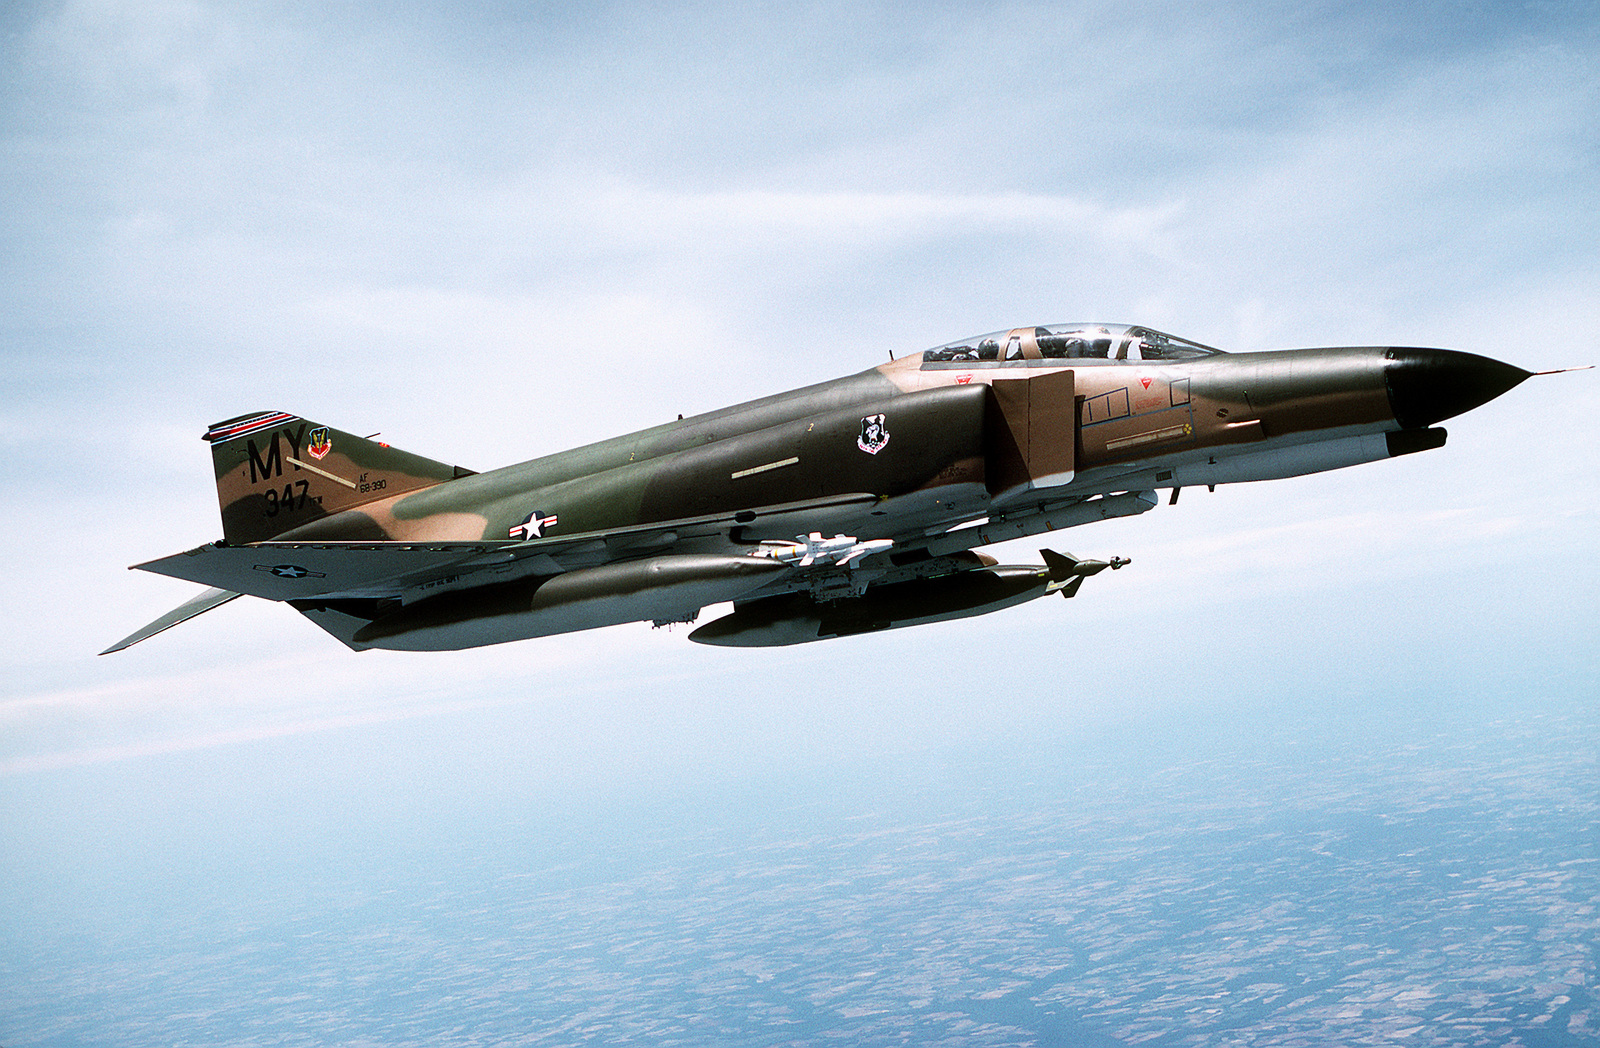 F-4E Phantom II aircraft from the 347th Tactical Fighter Wing. The aircraft is carrying an inboard 2,000-pound GBU-10 laser guided bomb, a Pave Spike laser designator, and two inboard AIM-9J Sidewinder missiles (left side to right)